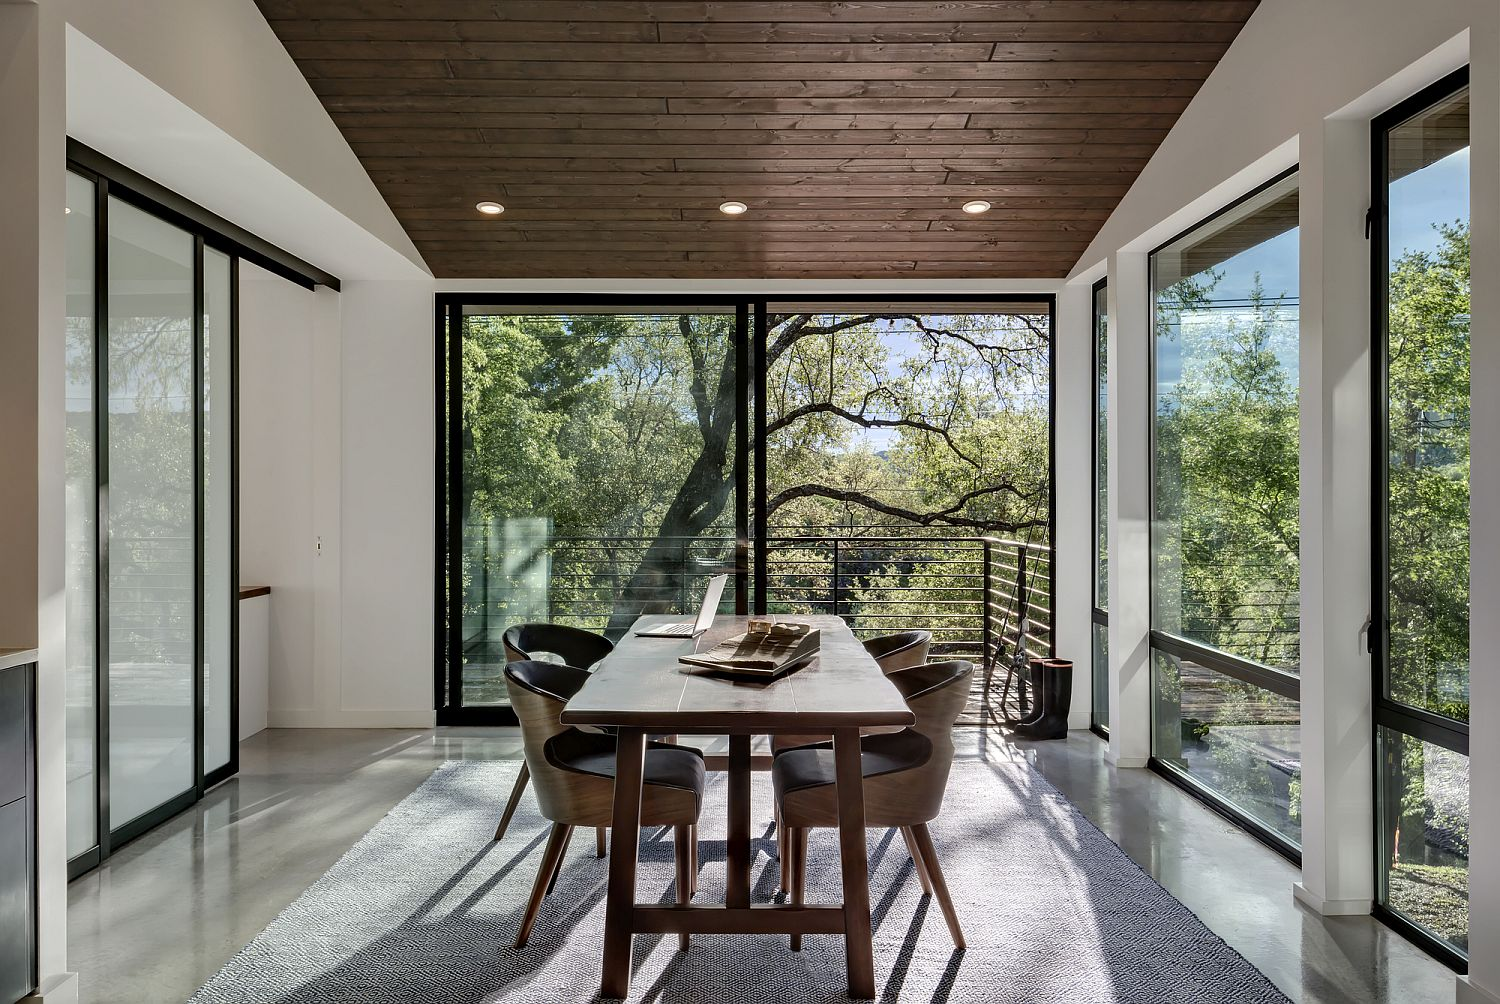 Sliding-glass-doors-connect-the-office-with-the-deck-outside